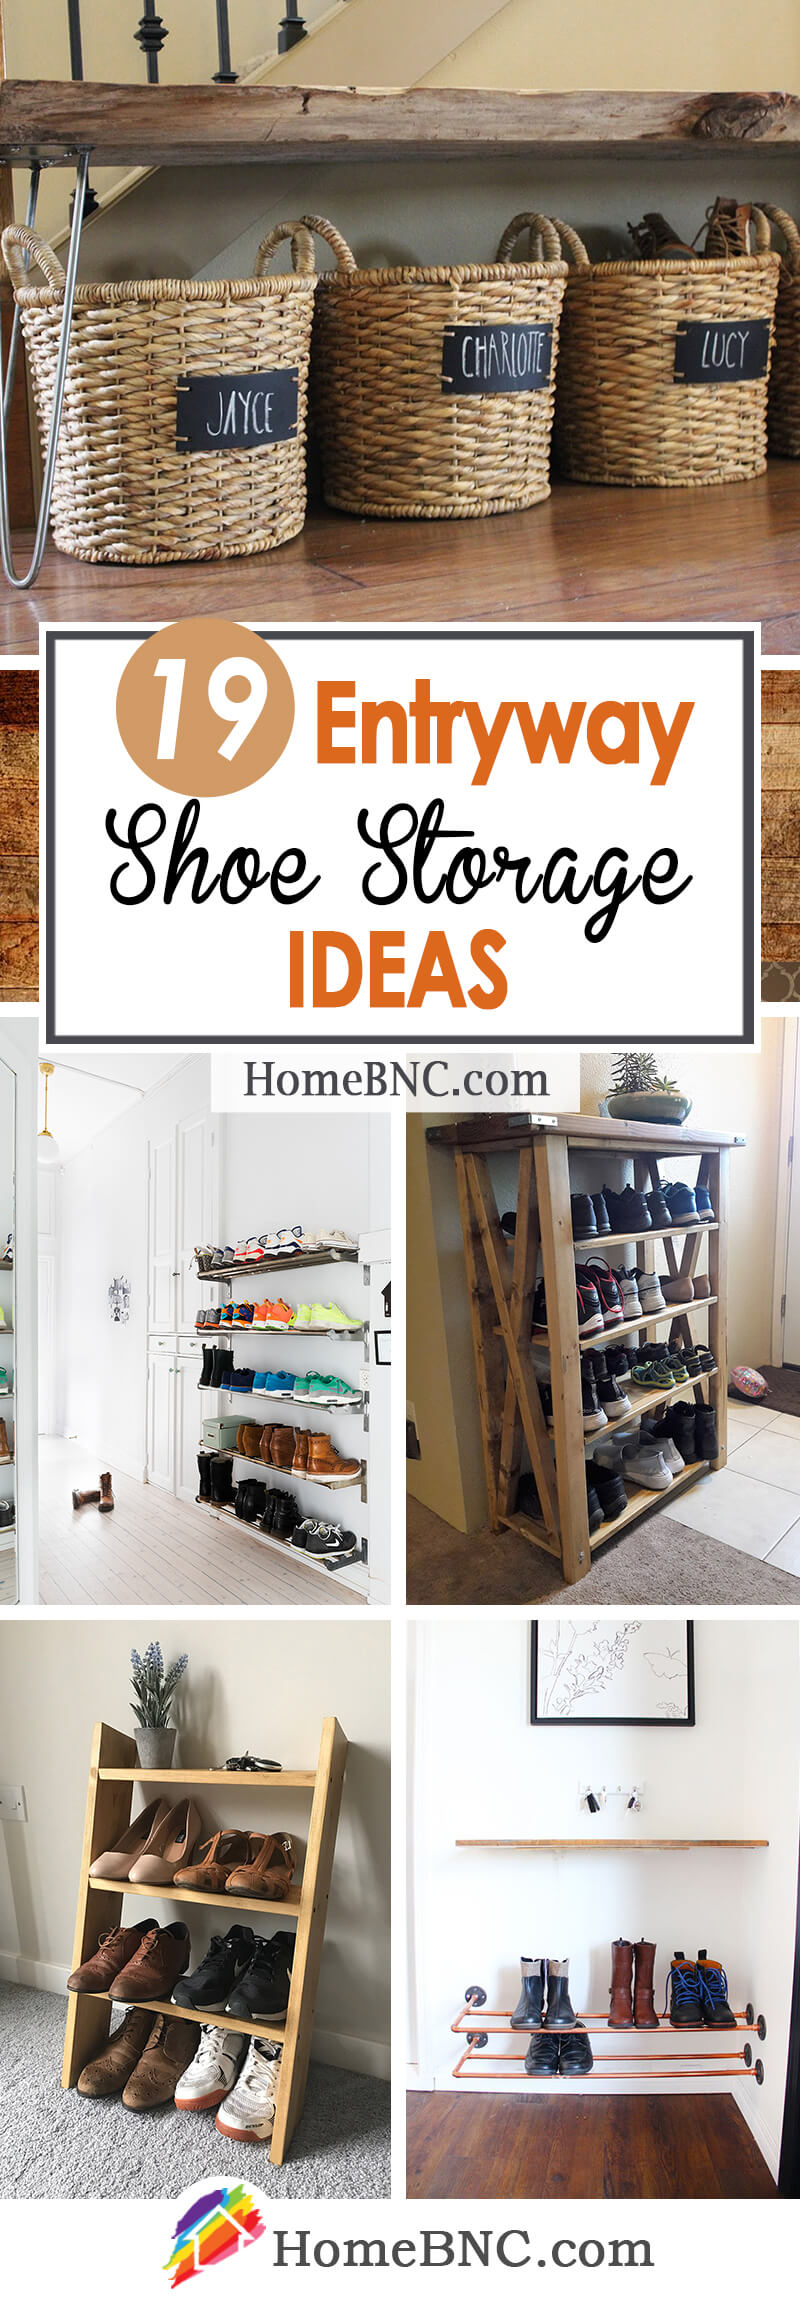 Entryway Shoe Storage Ideas